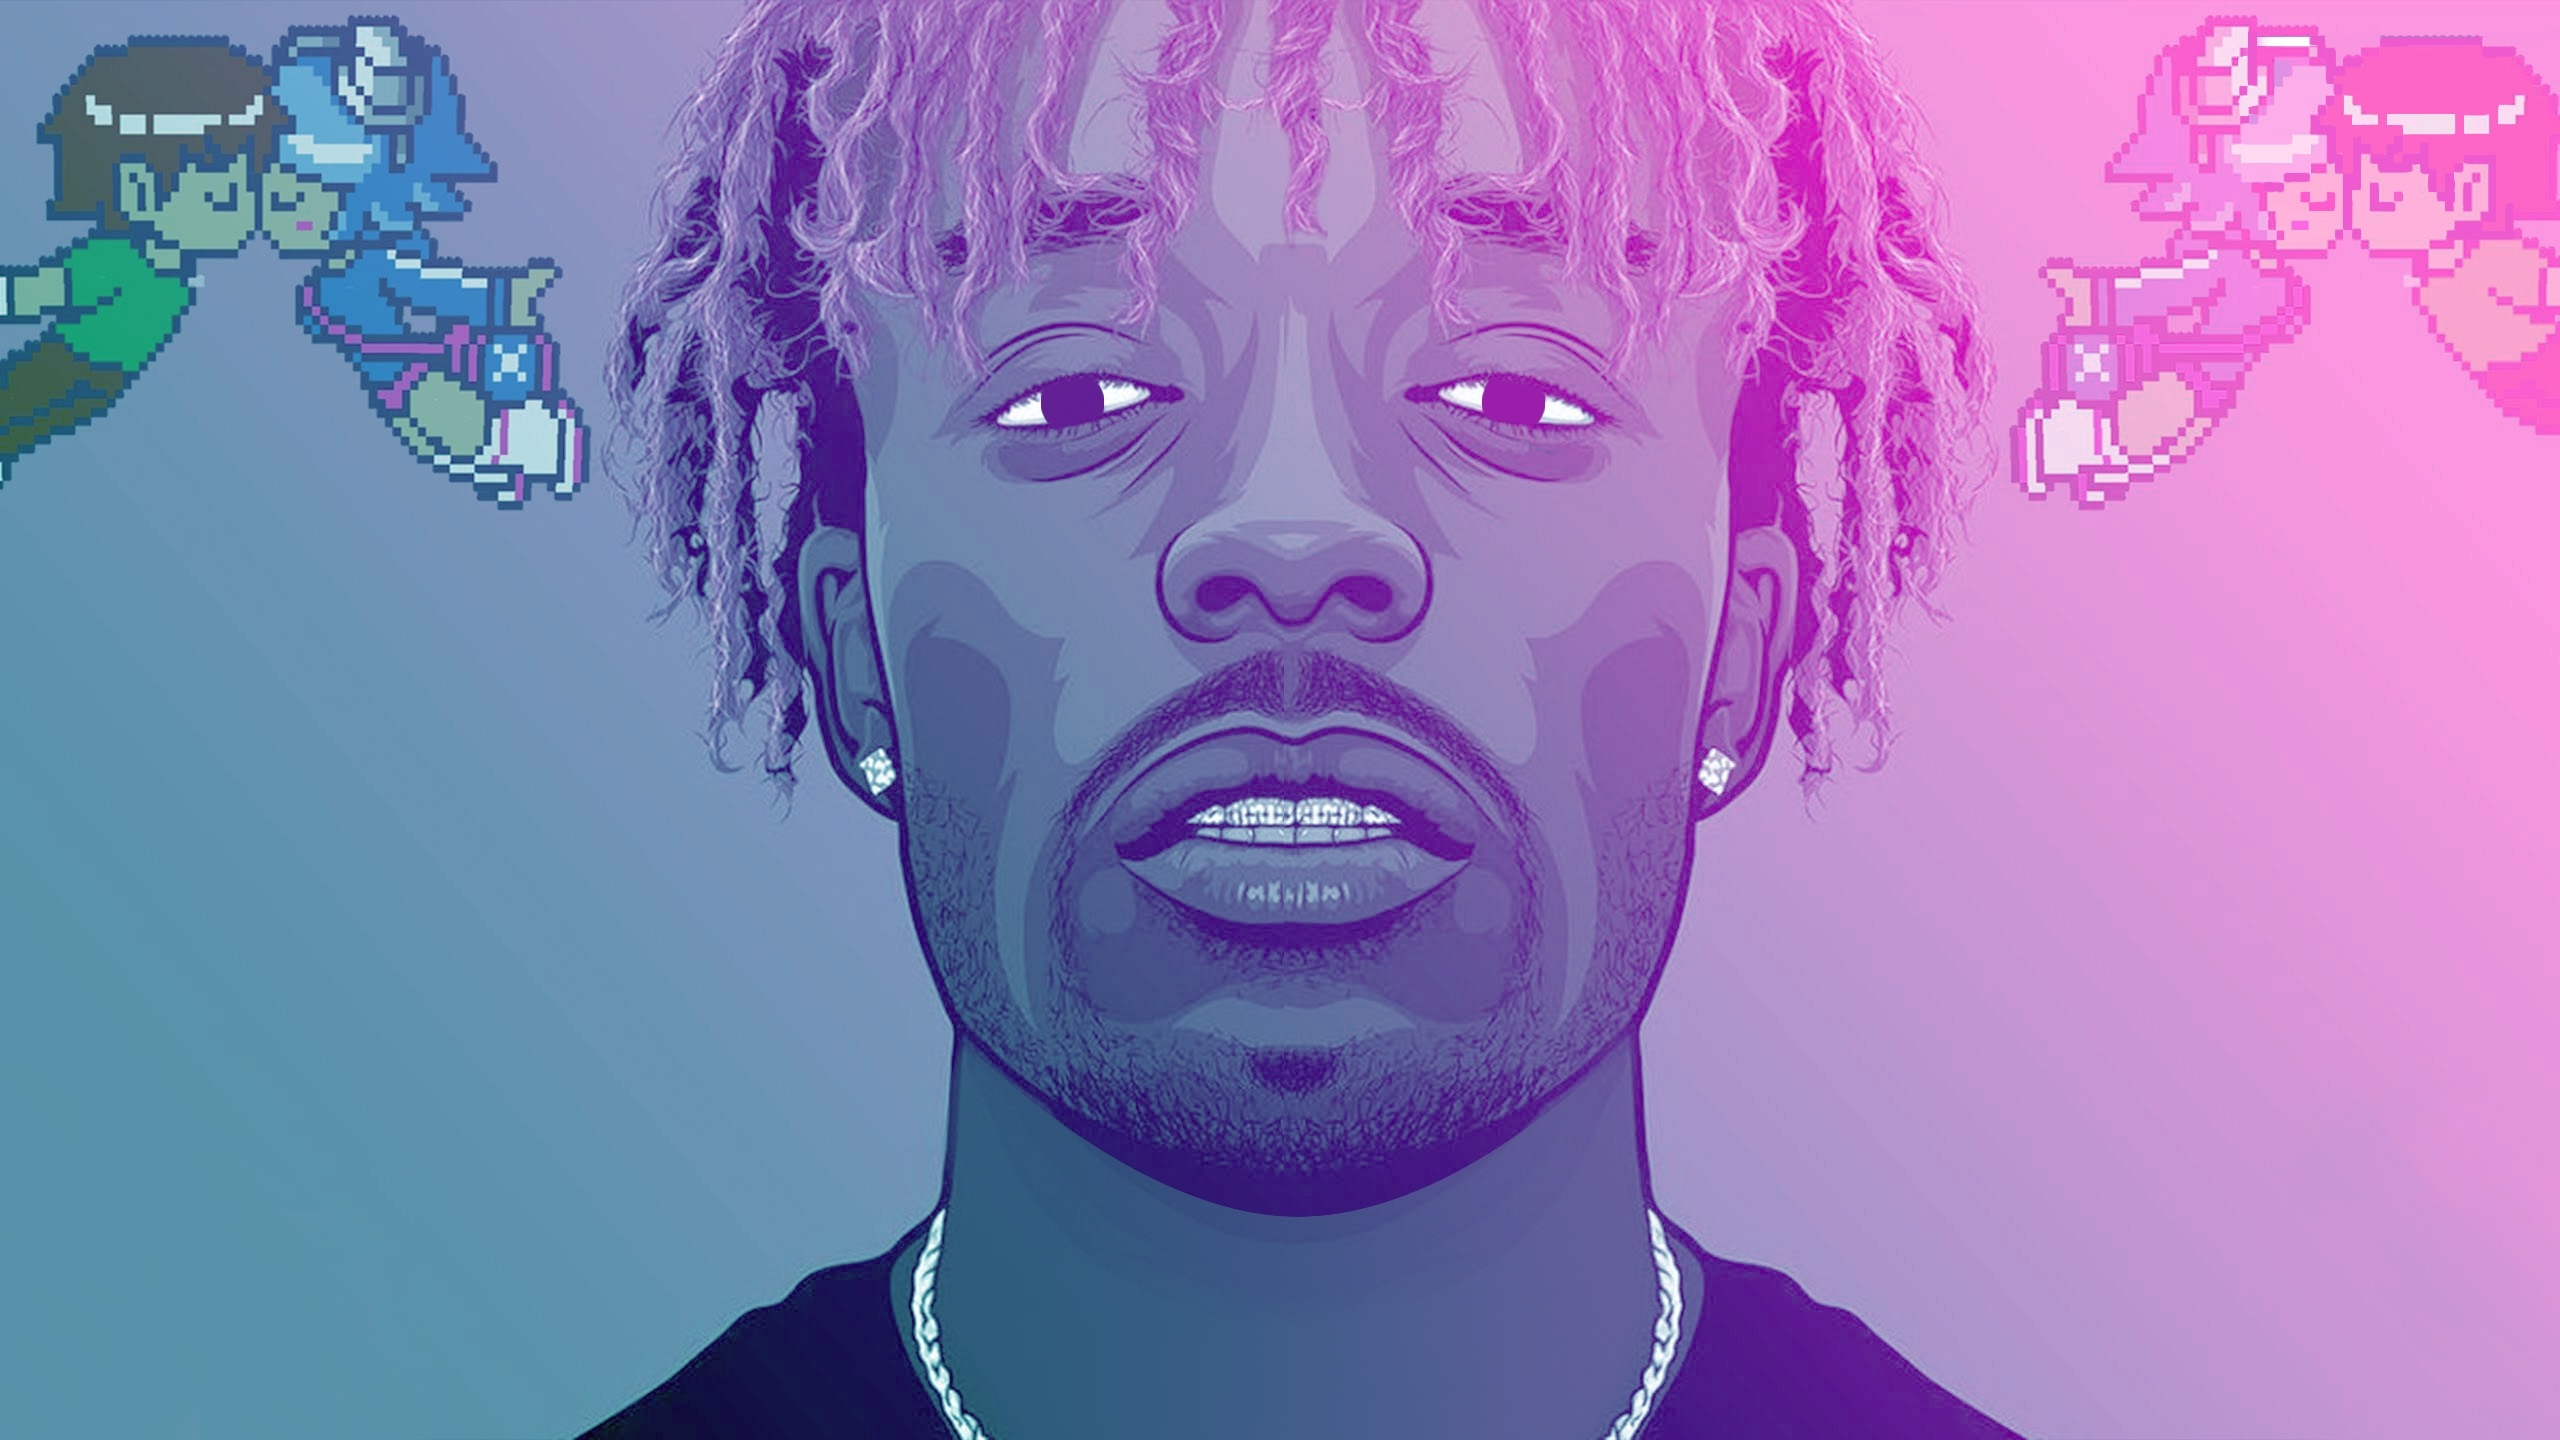 lil uzi vert wallpapers - album on imgur